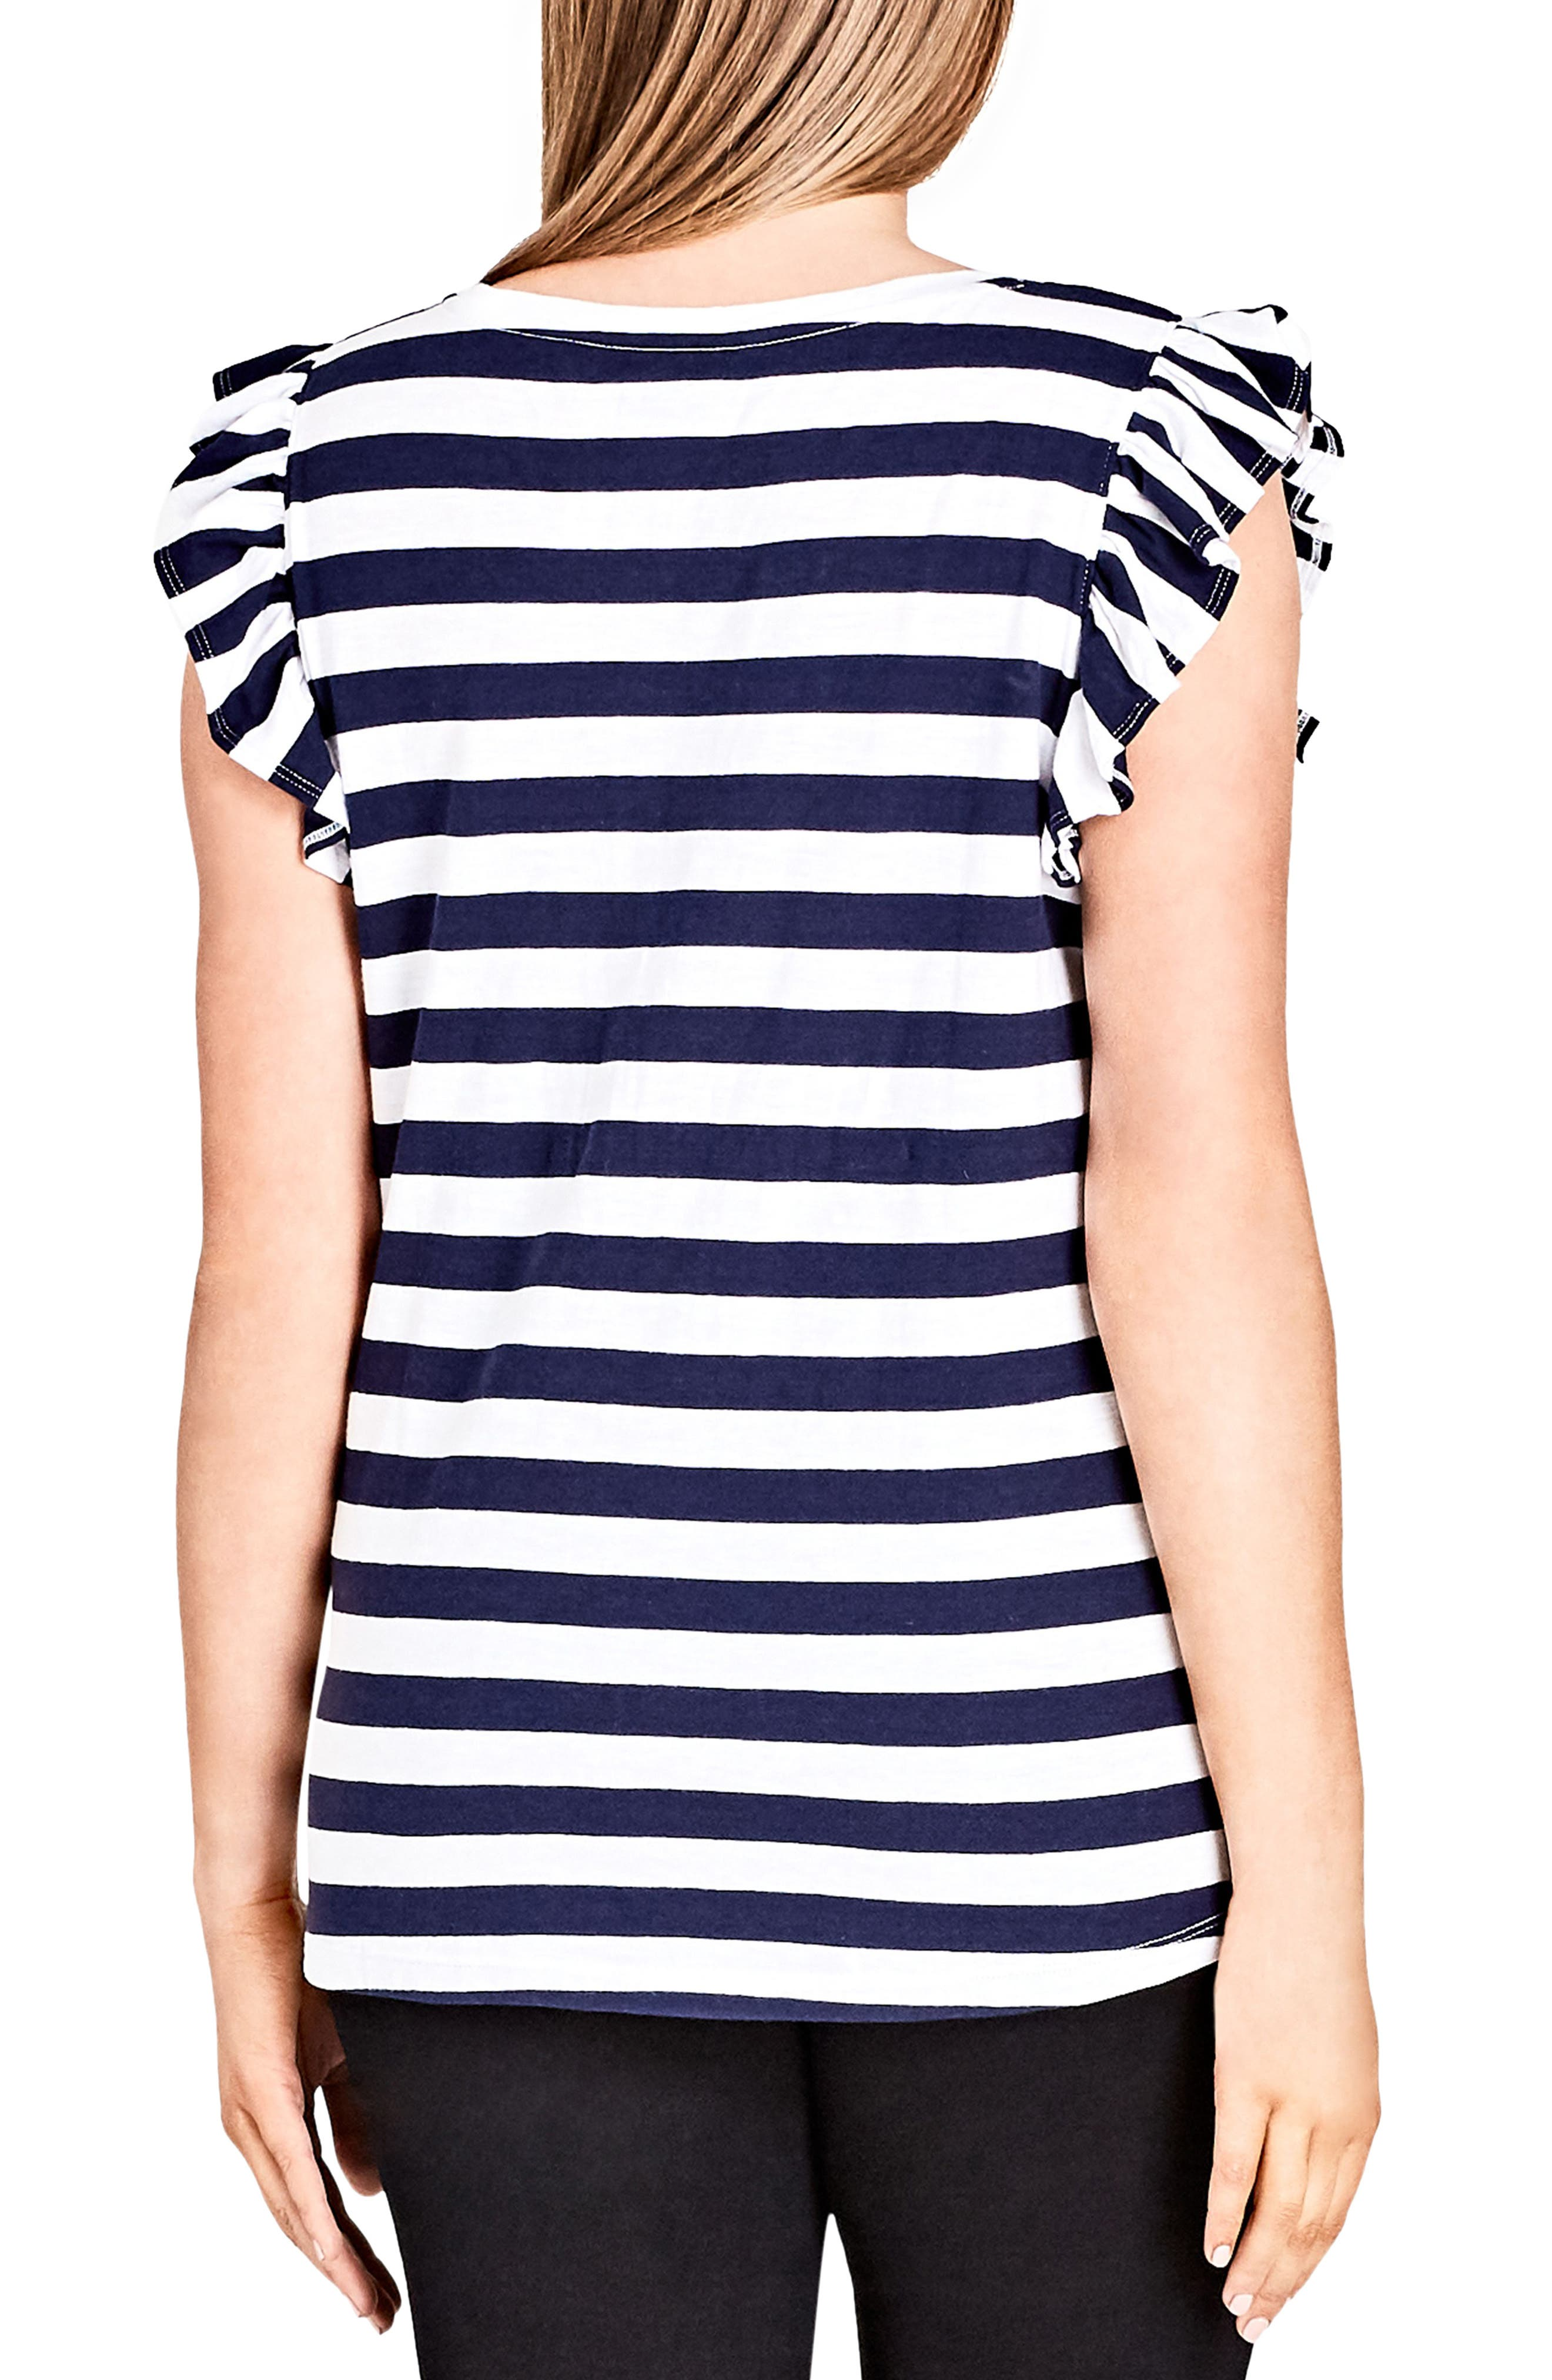 CITY CHIC,                             Stripe Frill Sleeve Knit Top,                             Alternate thumbnail 2, color,                             108